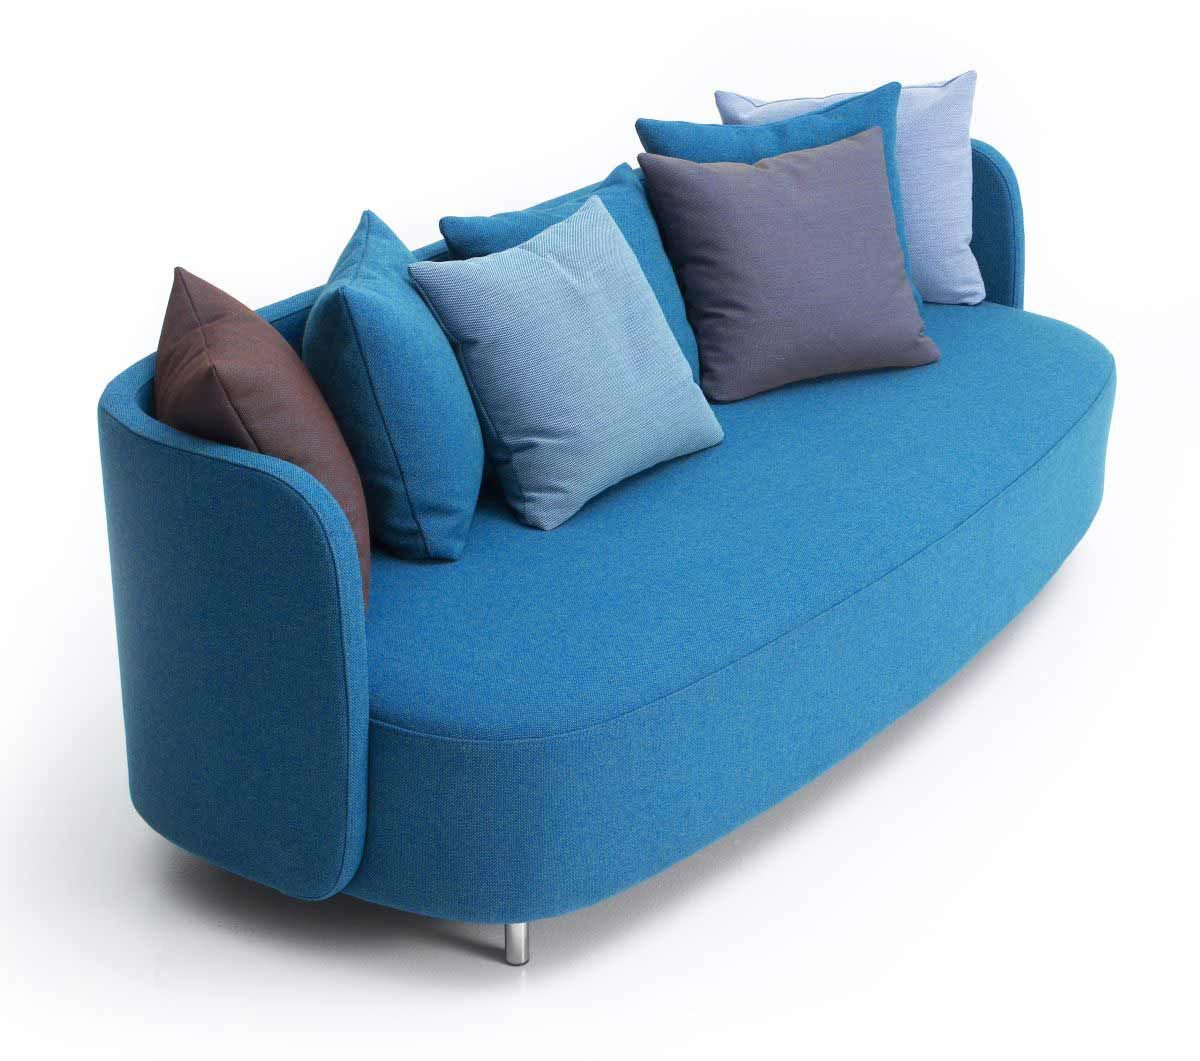 blue couches living rooms minimalist. Minimalist Interior Designs For Living Rooms | Blue Room Couches In Design Listed T